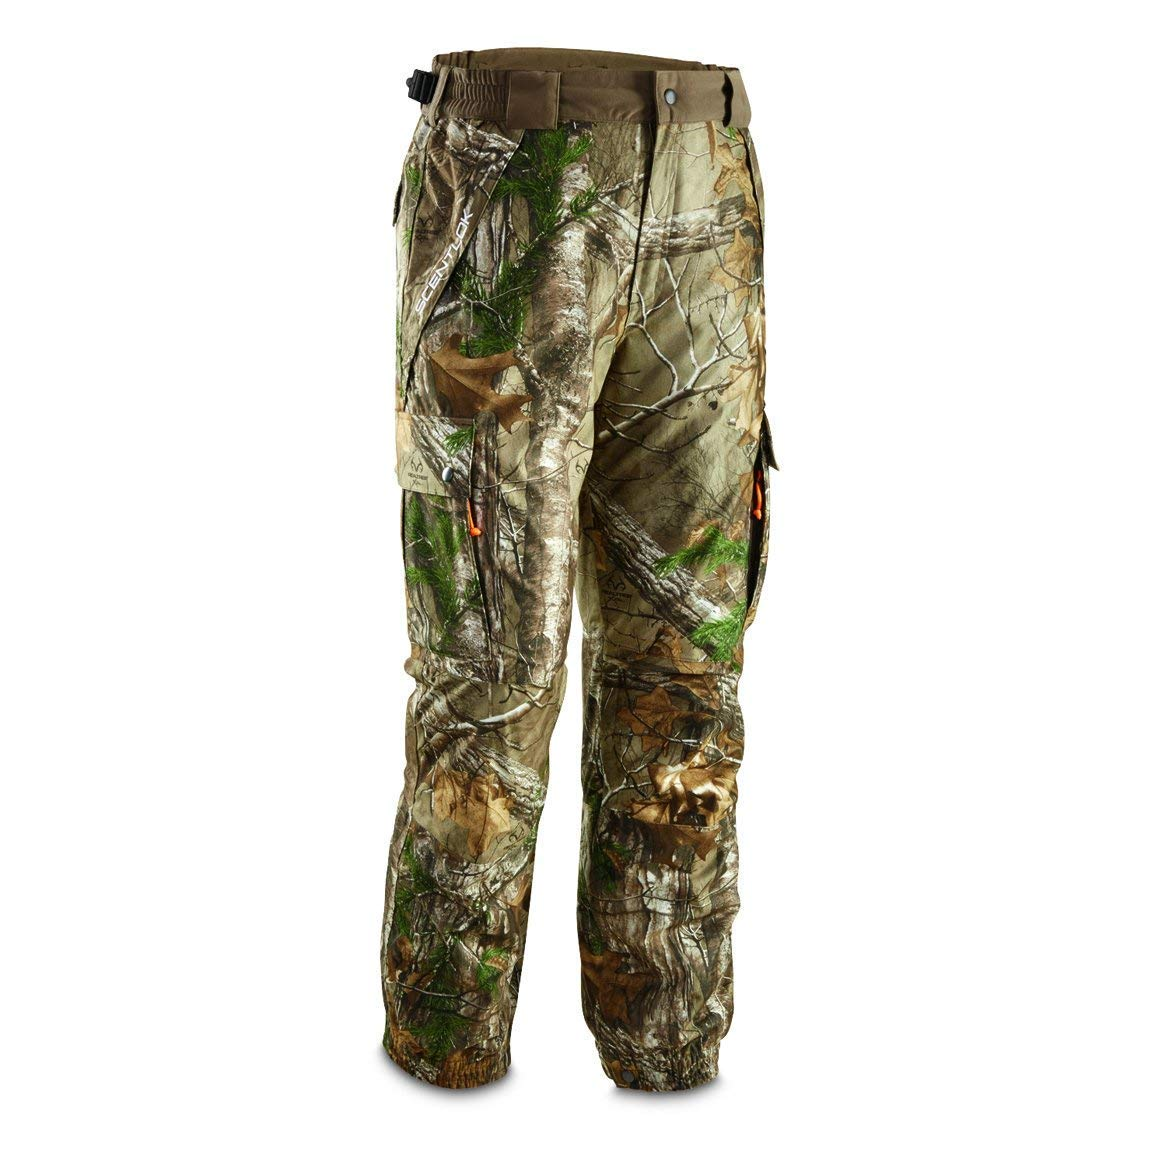 d2fb728064731 Amazon.com : ScentLok Cold Blooded Pant : Sports & Outdoors